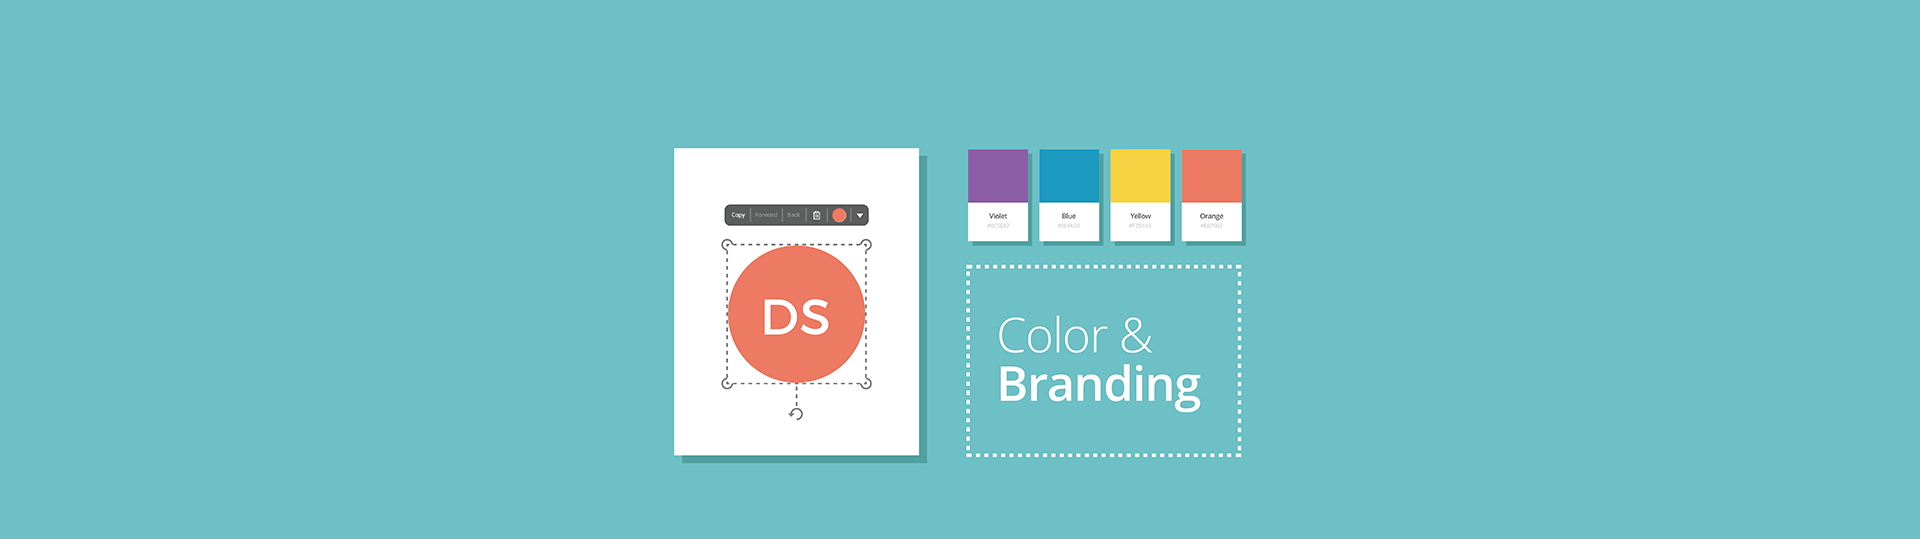 The Marketing Rainbow: The Importance of Colour - Blog Lorelei Web Design